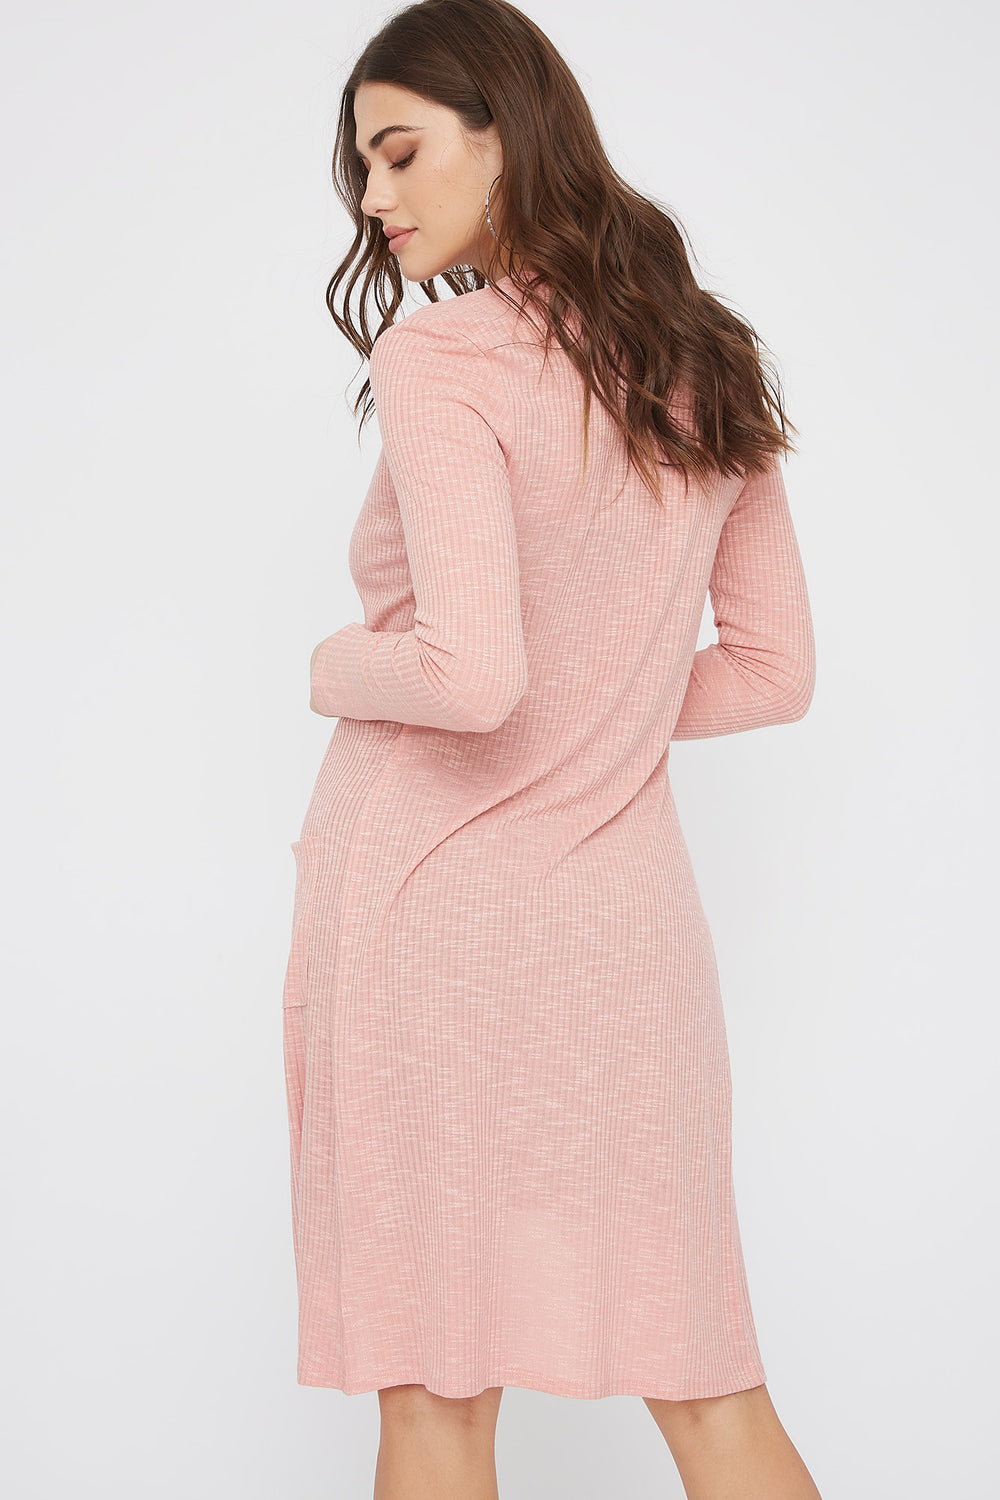 Ribbed Pocket Duster Cardigan Light Pink